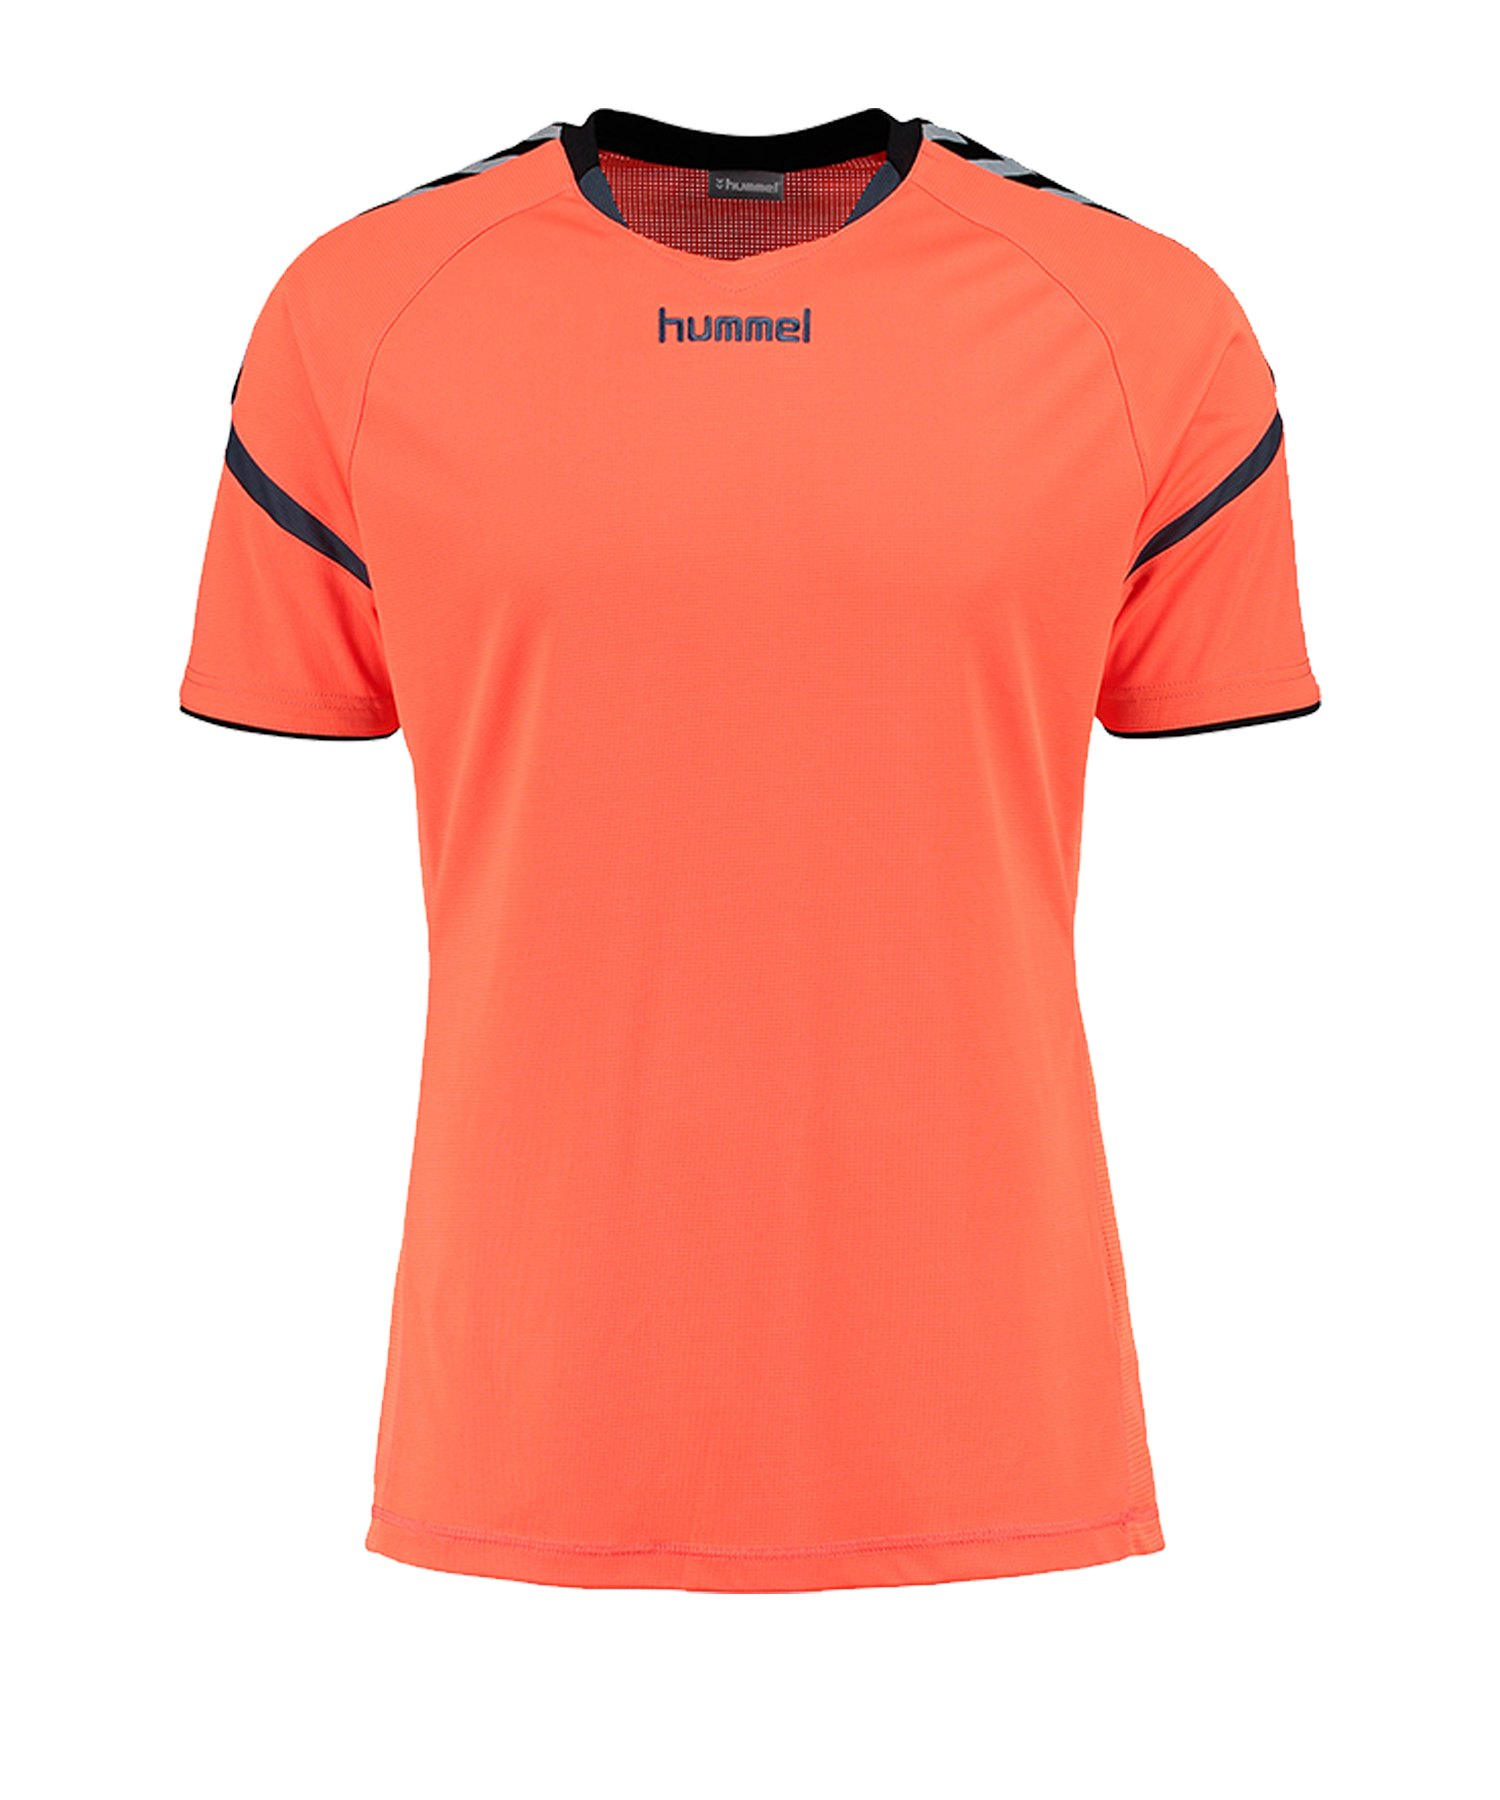 Hummel Authentic Charge Trikot kurz Orange F0369 - Orange